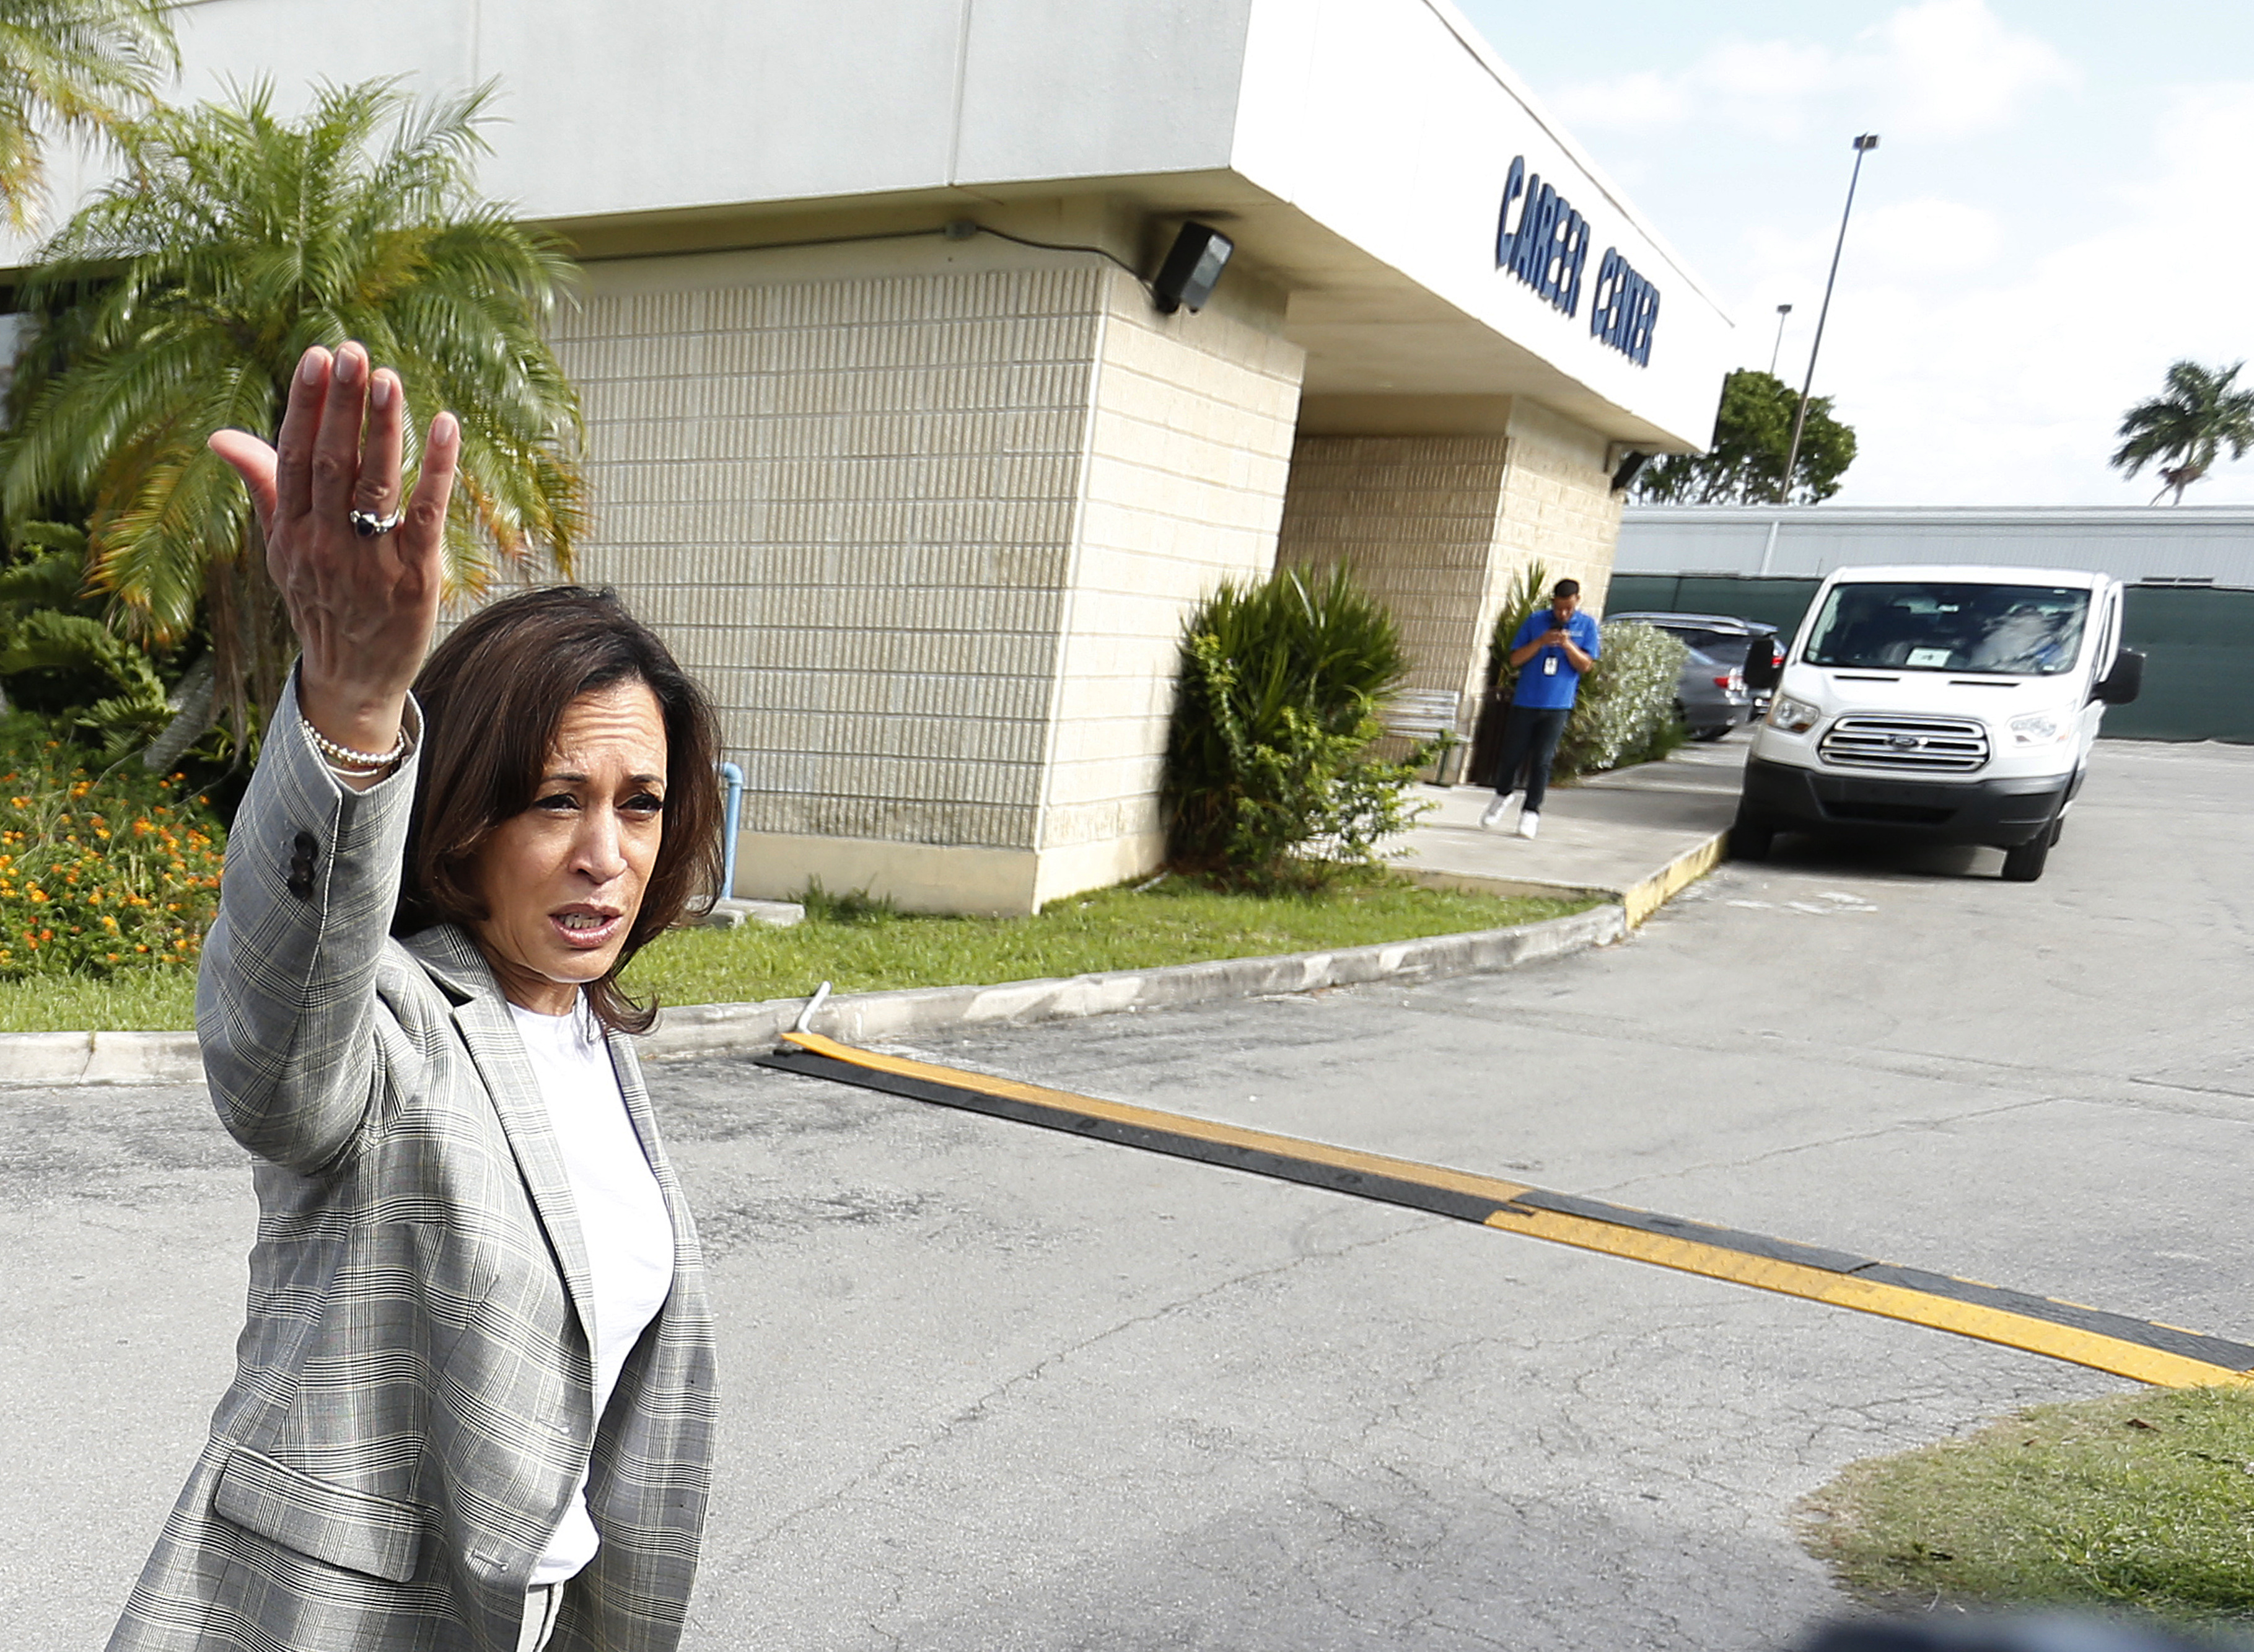 Democratic presidential hopeful Kamala Harris stops to address the media before entering the office where migrant children are being held in a detention center in Homestead, Florida on June 28, 2019. (Photo credit should read RHONA WISE/AFP/Getty Images)